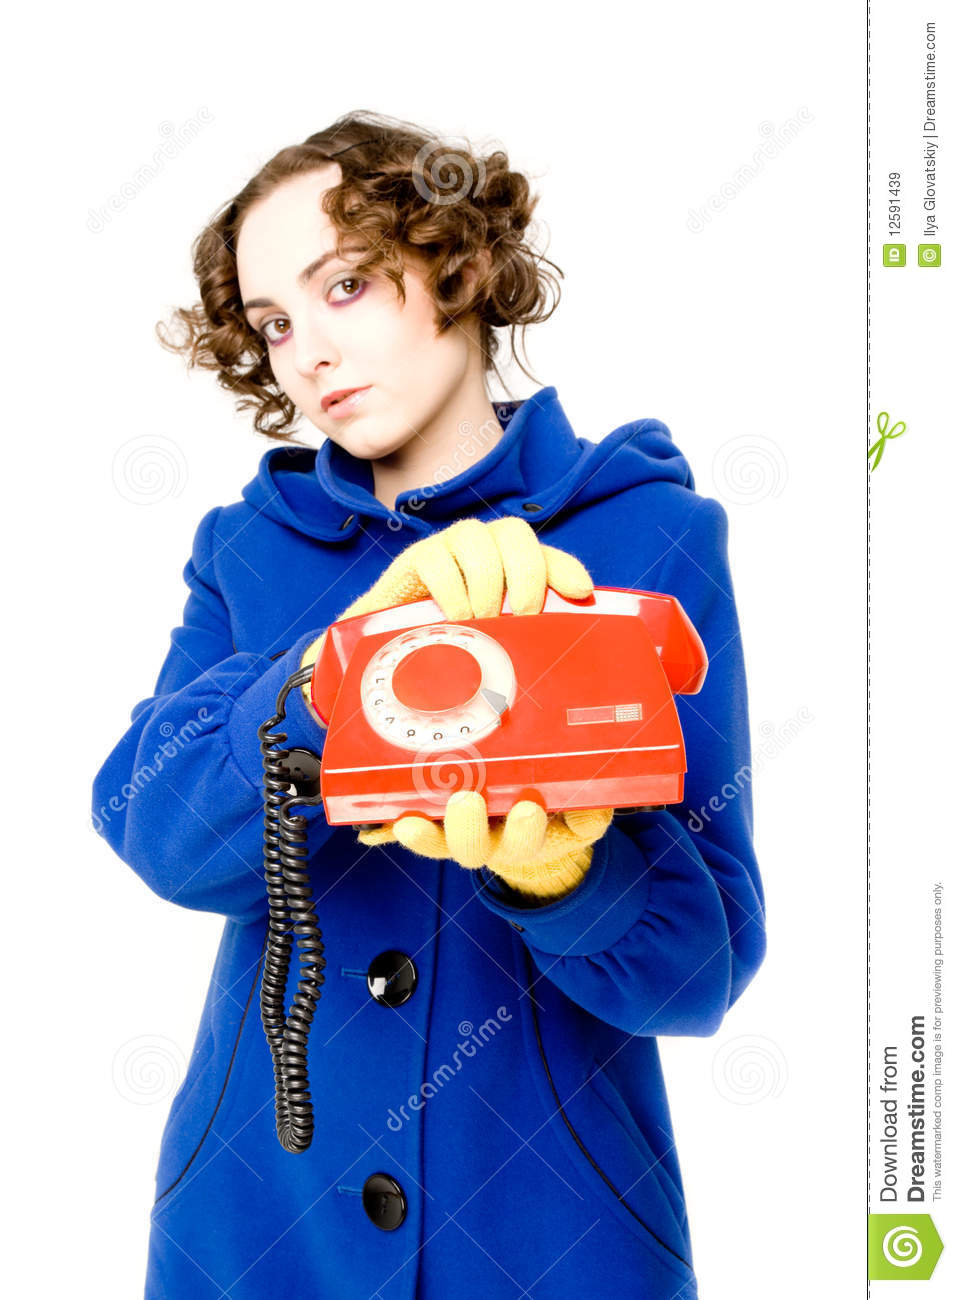 Girl with old telephone (focus on the telephone)